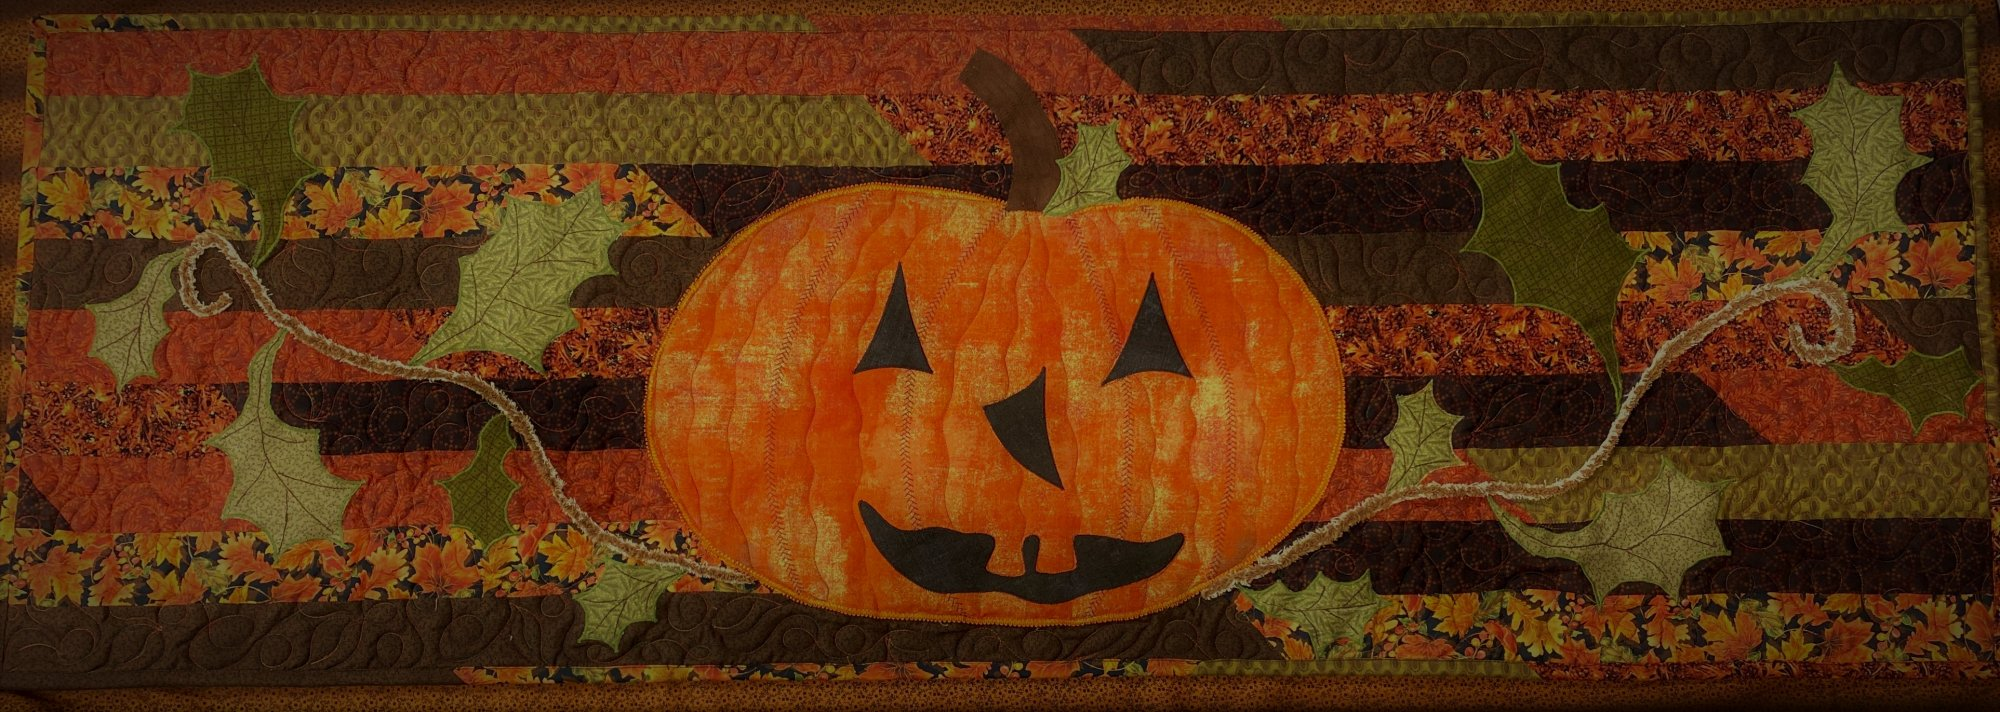 The Pumpkin Patch Table Runner Kit